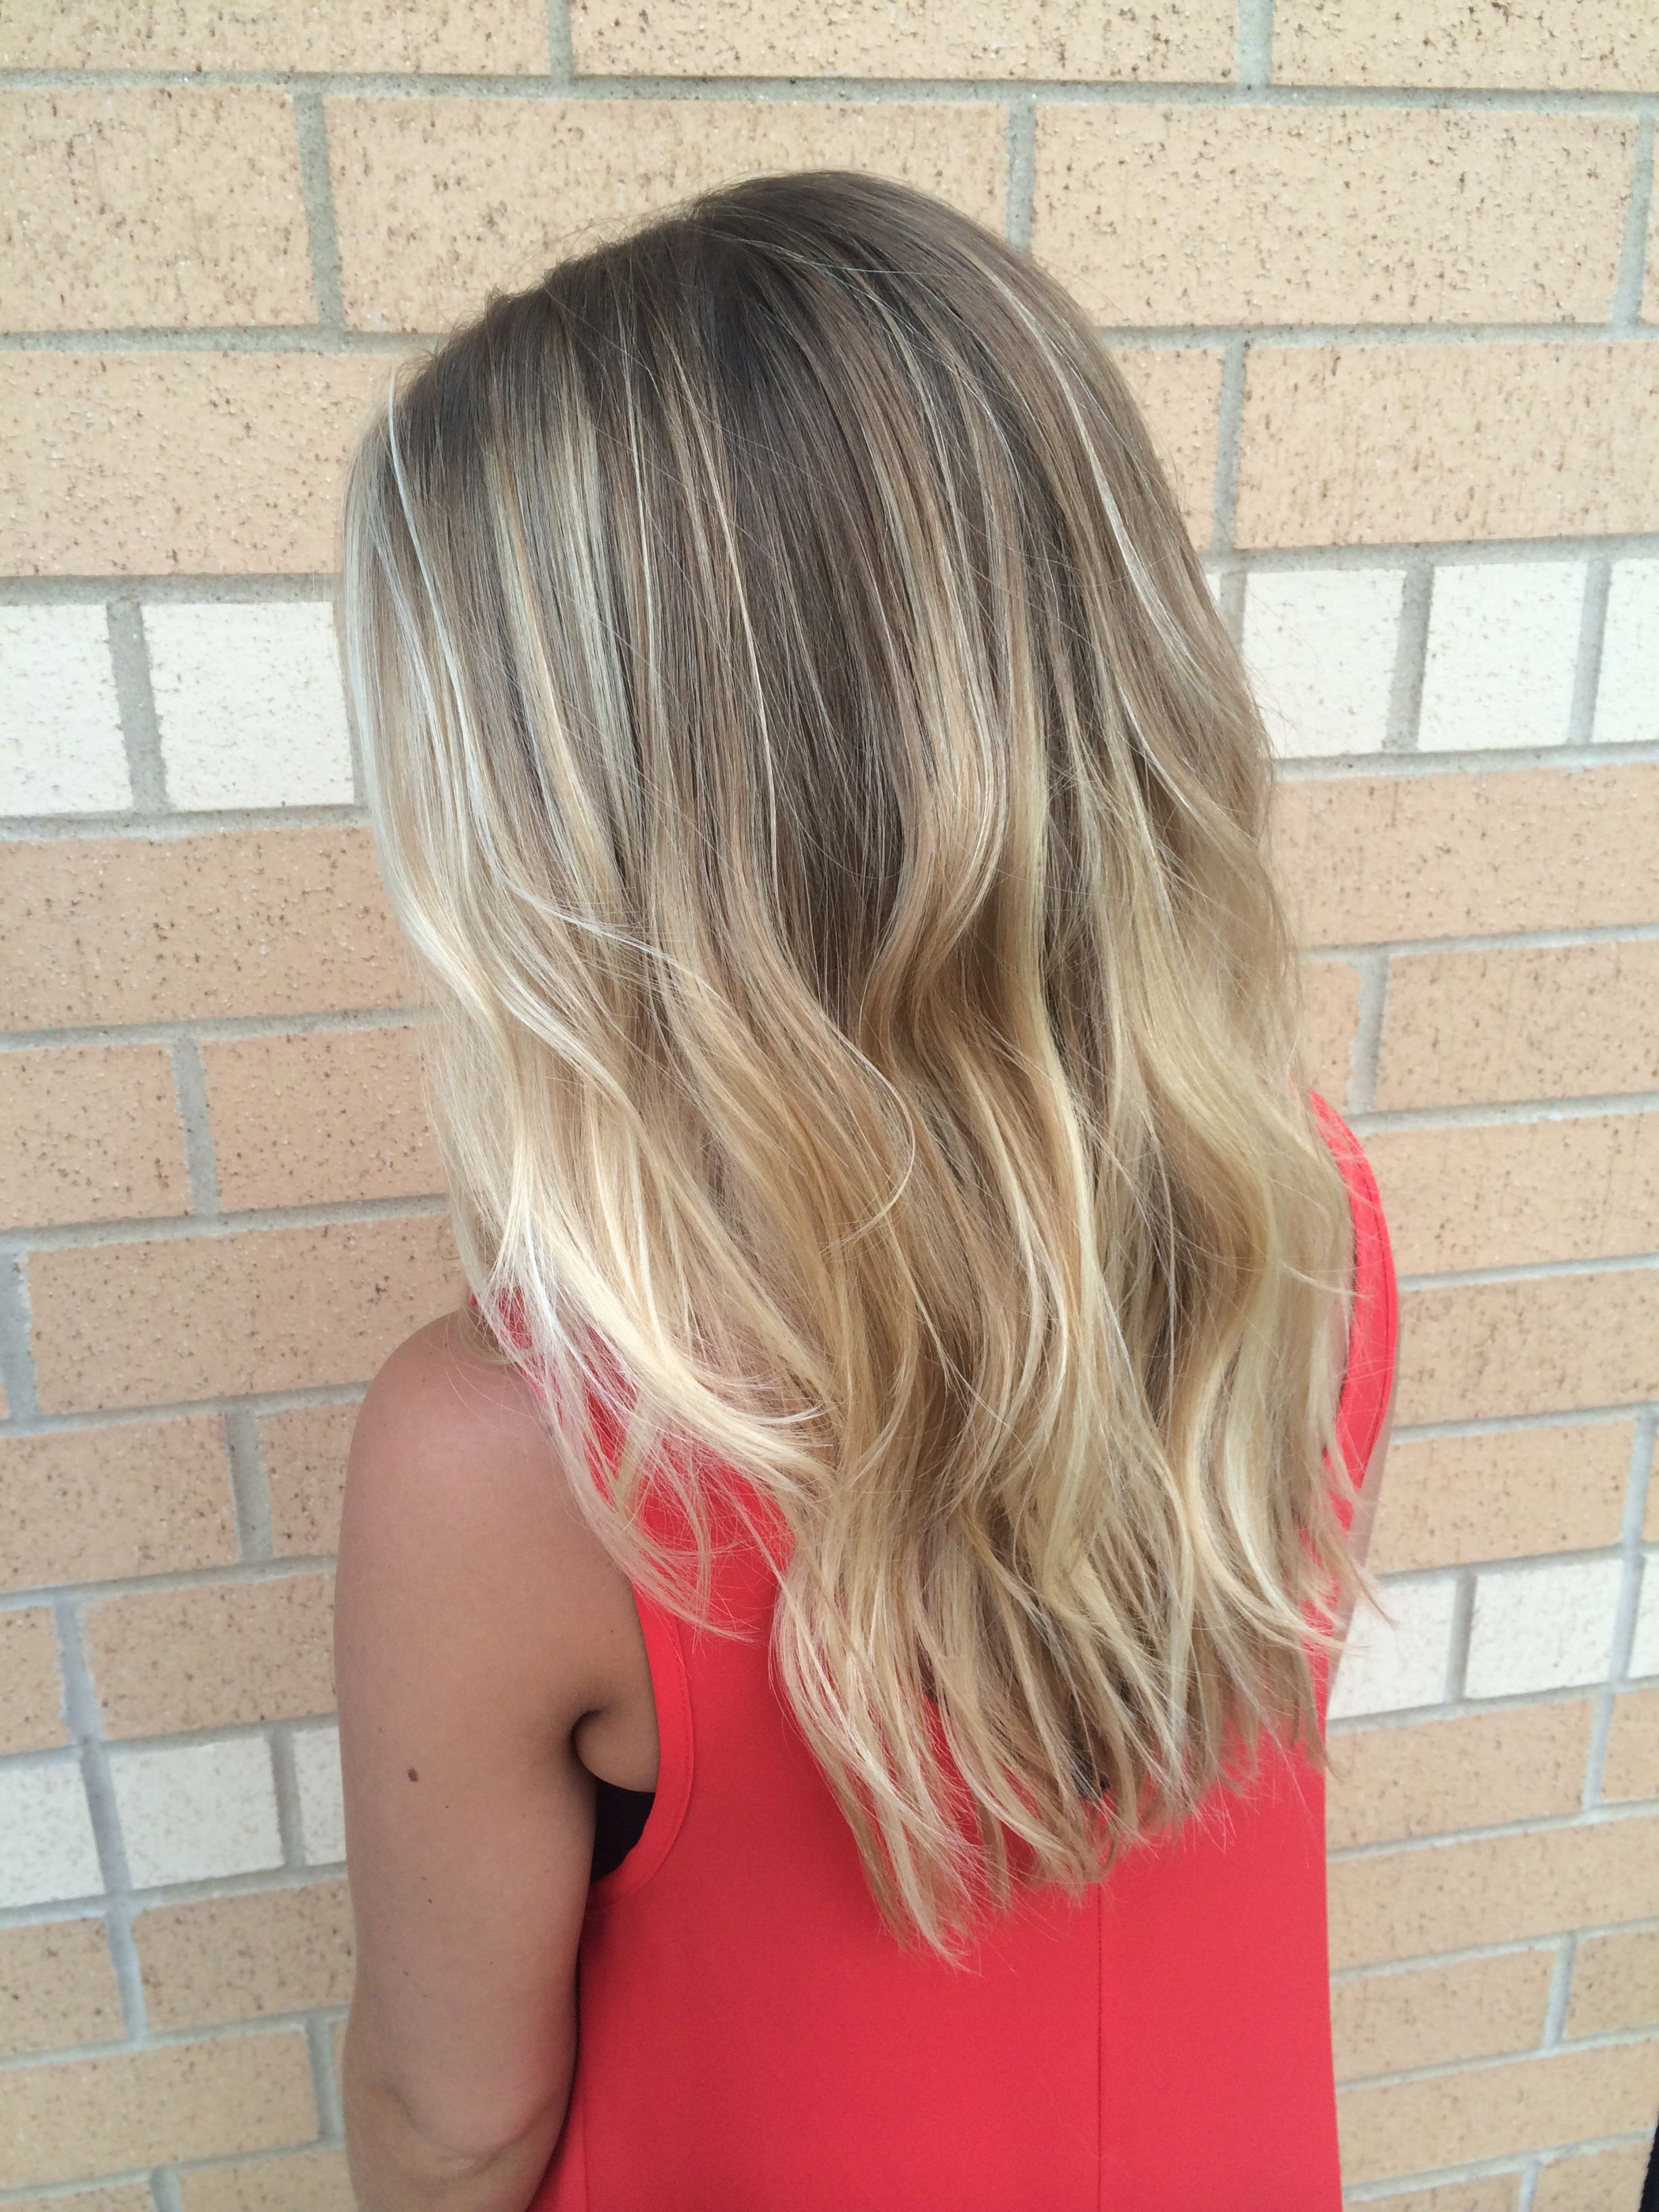 Low Maintenance Blonde Hair With Balayaged Highlights Instagram